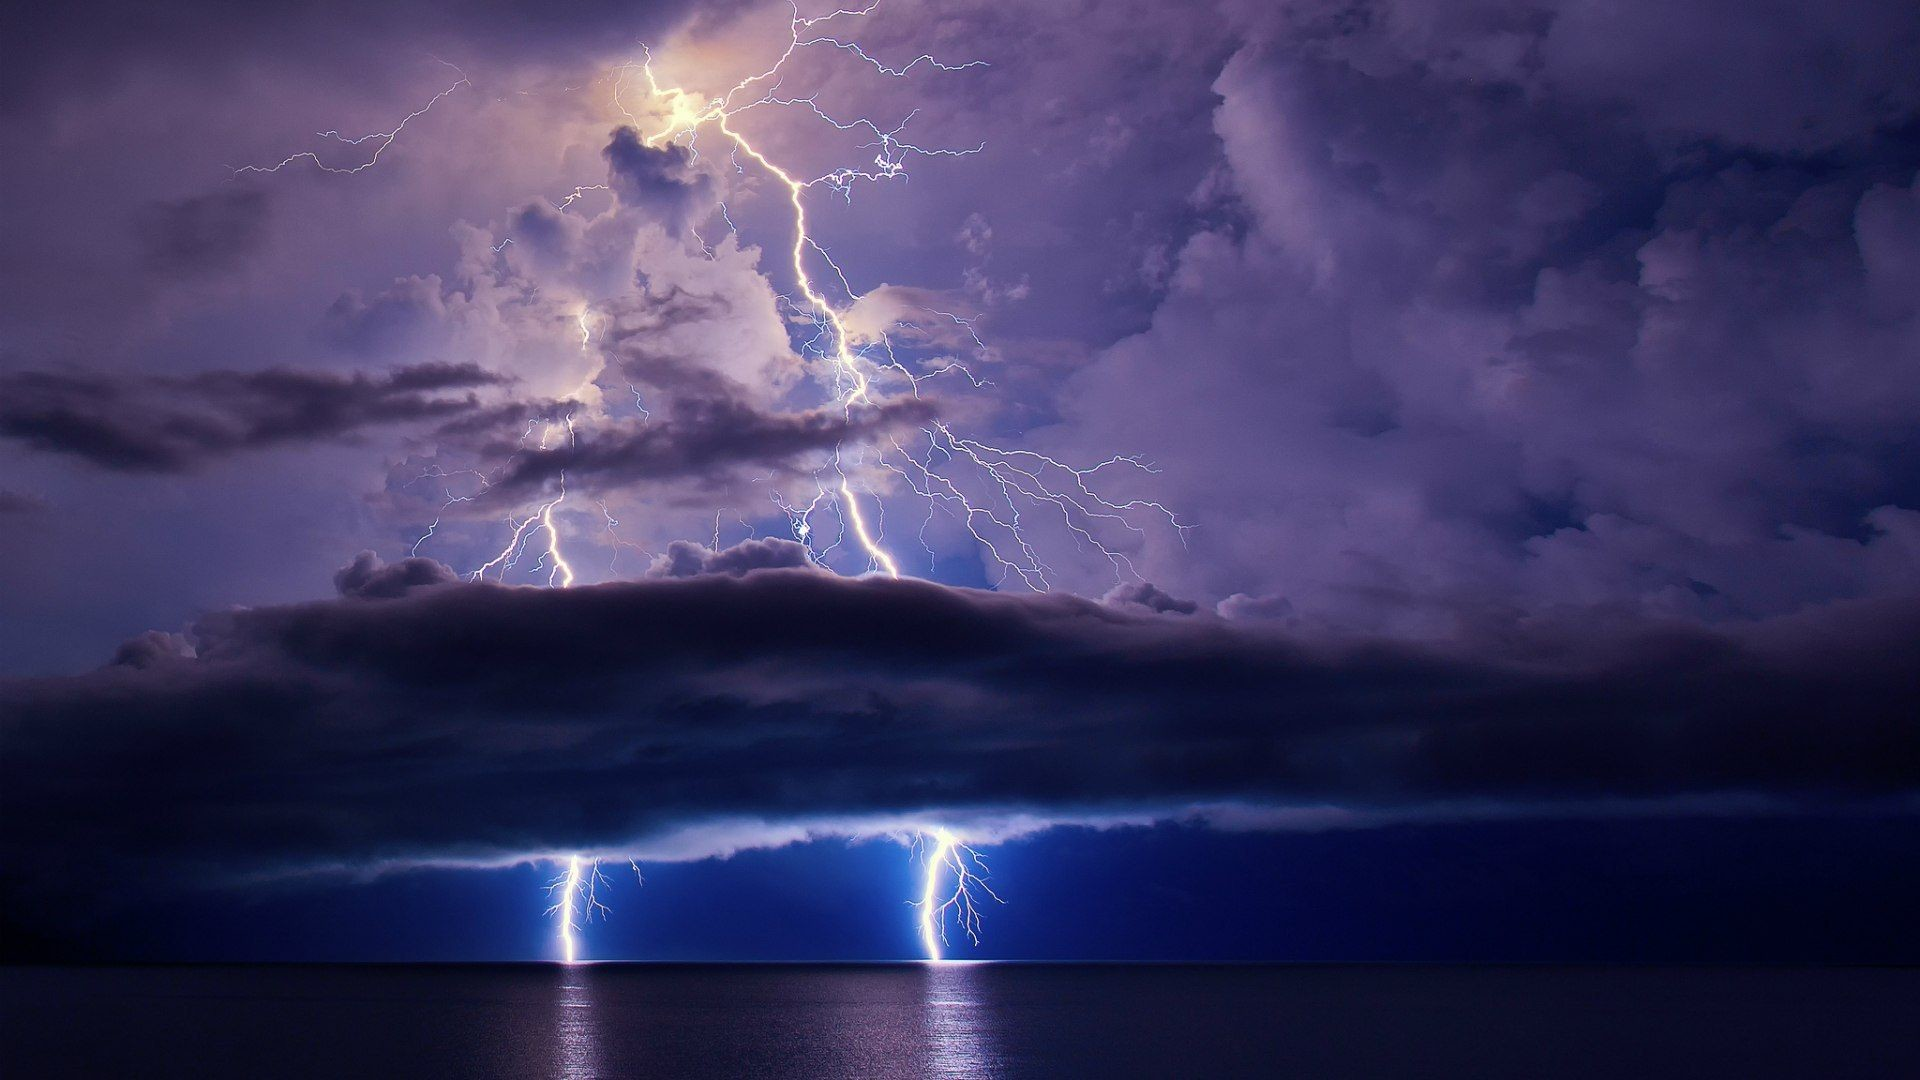 Hd Thunderstorm Wallpapers: Lightning Dragon Wallpaper For (62+ Images